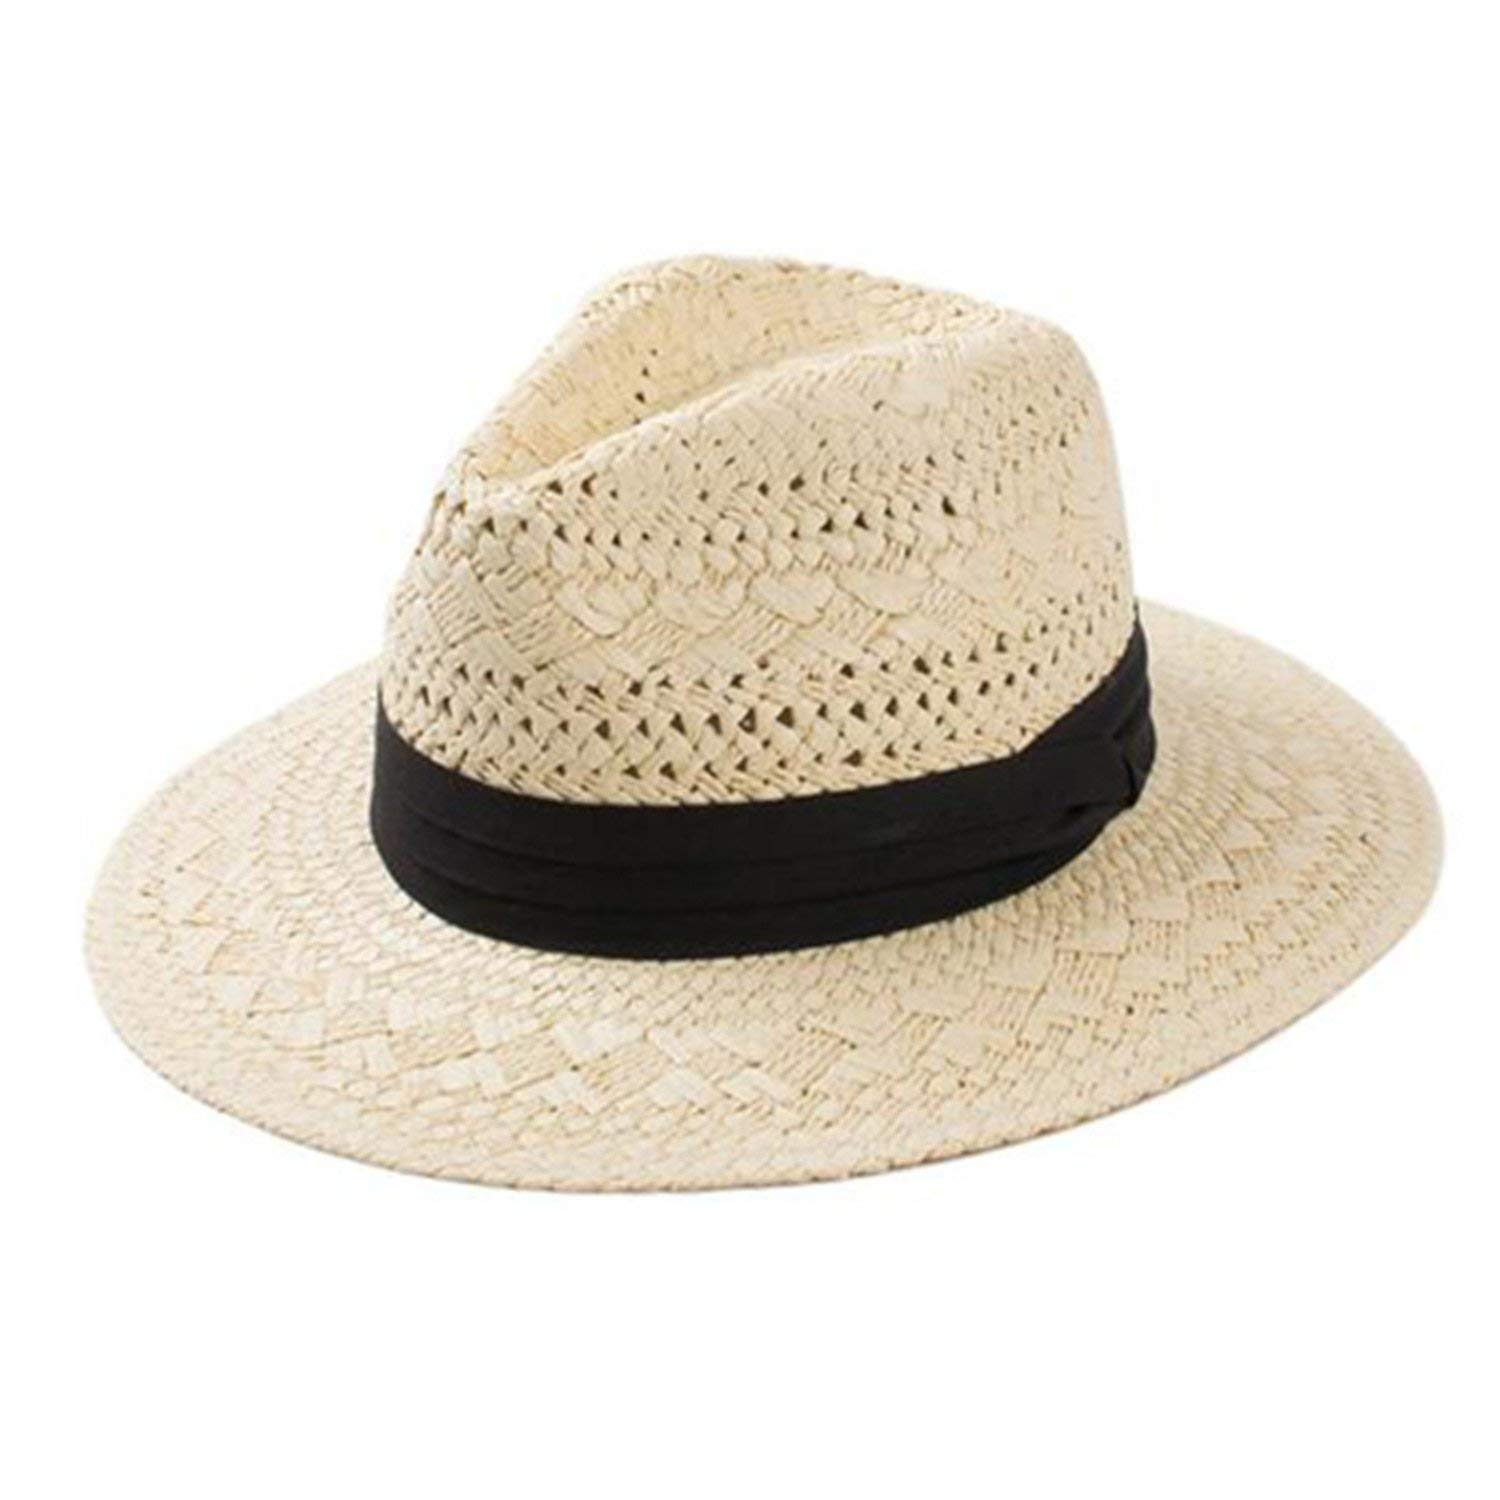 1b86972c2f12b Get Quotations · Zachaomero Hollow Straw Sun Hats for Women Trilby Summer  Hats with Wide Brim Beach Uv Hat